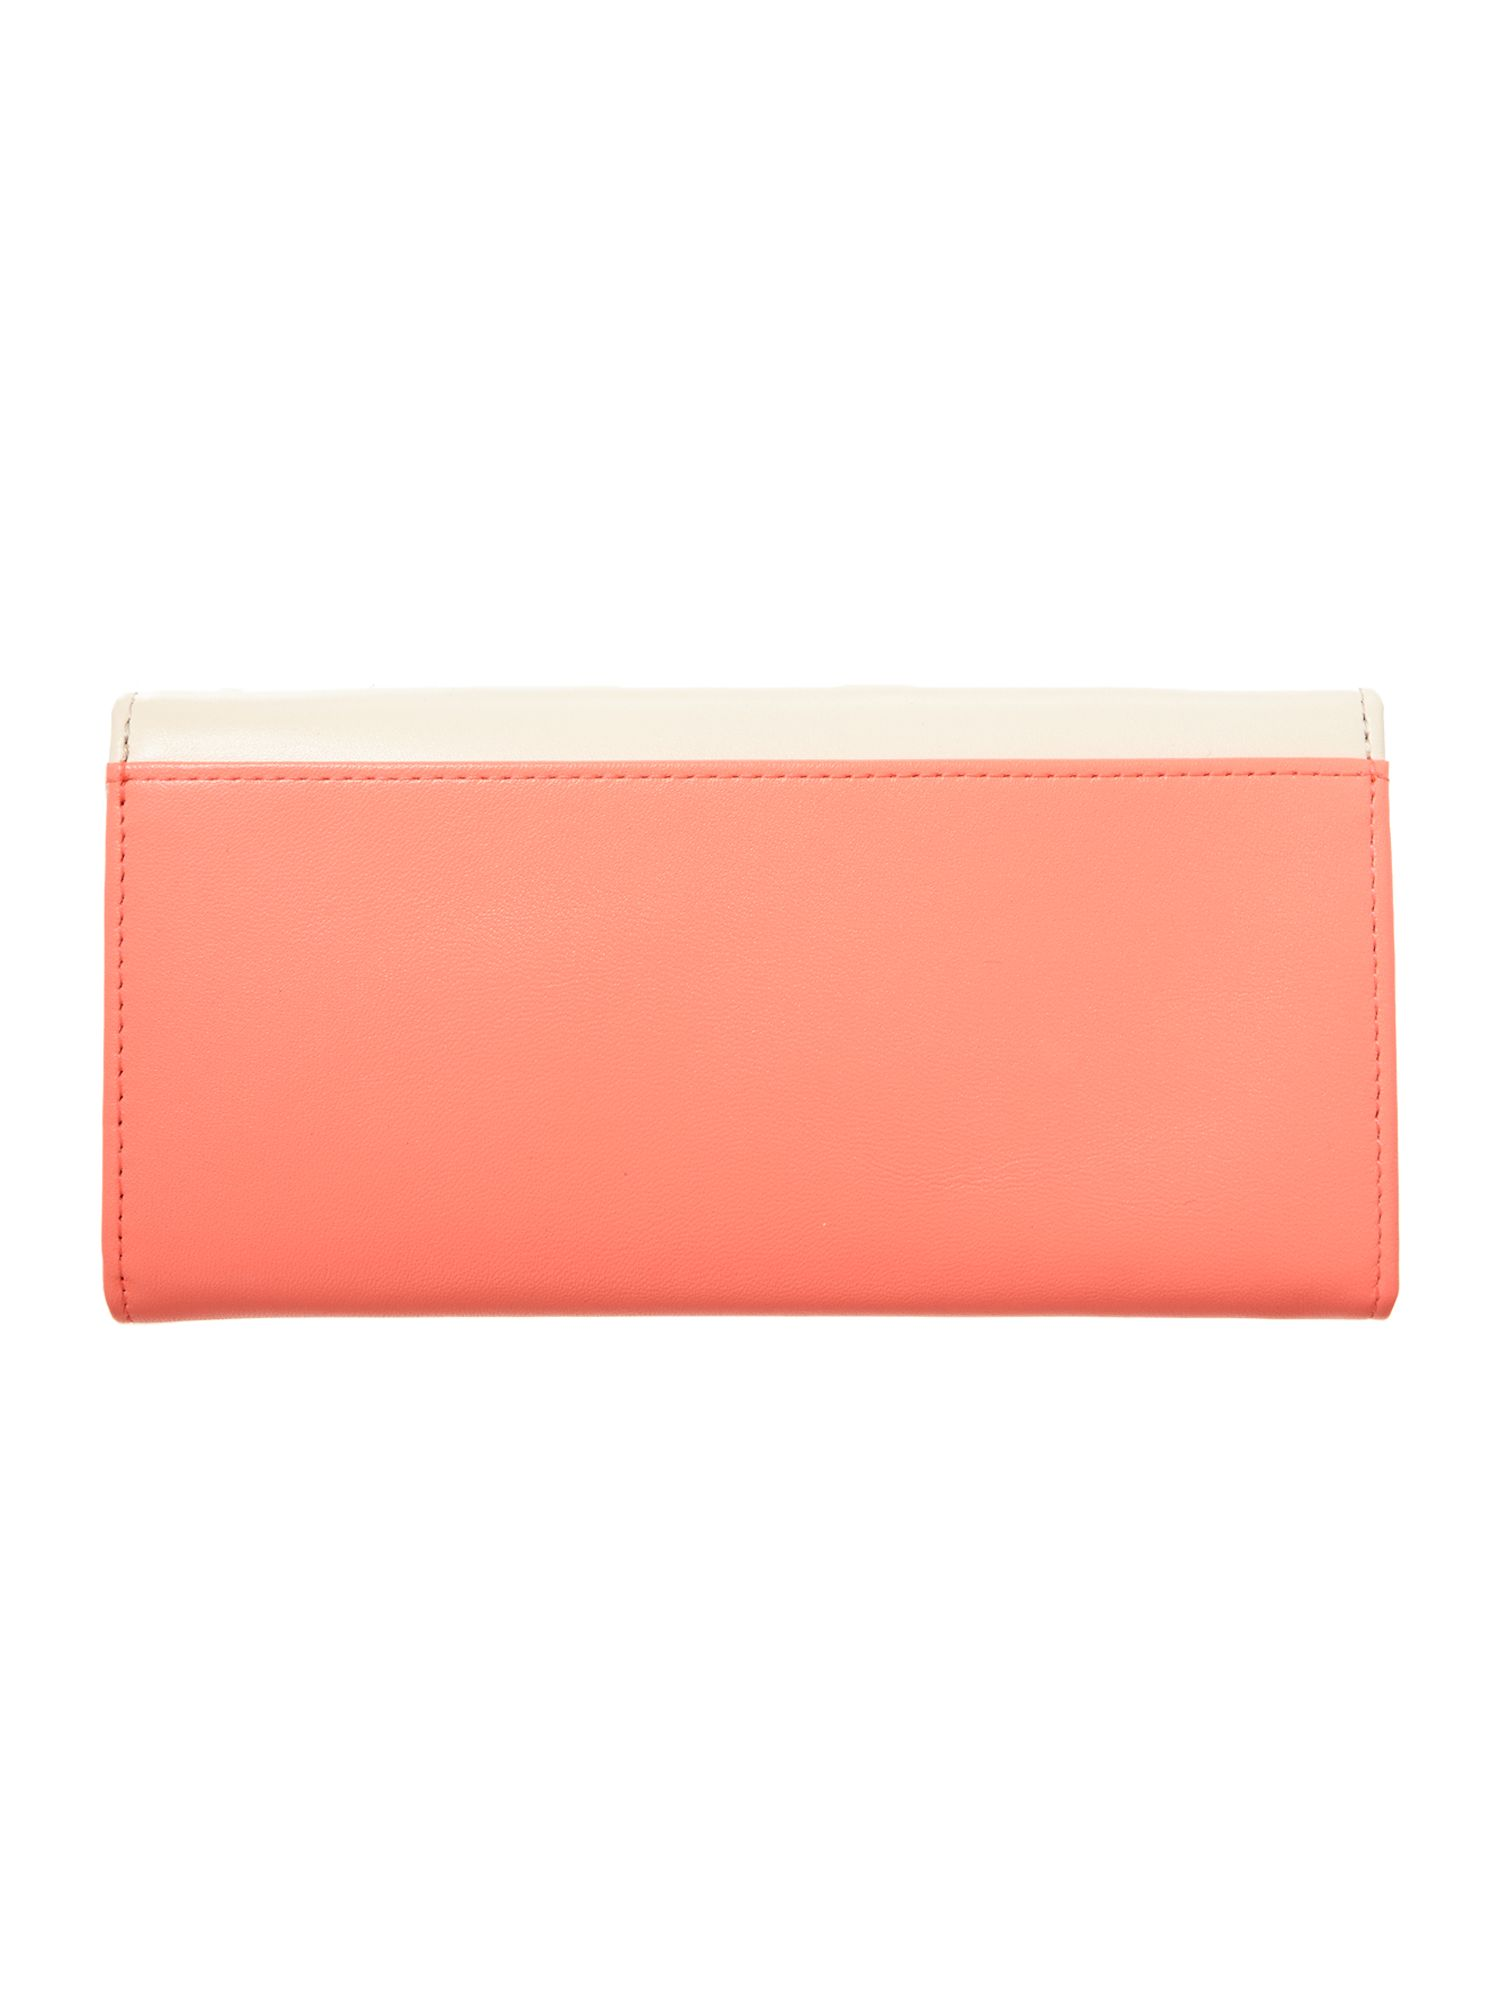 Bright Pink and Nude flapover purse